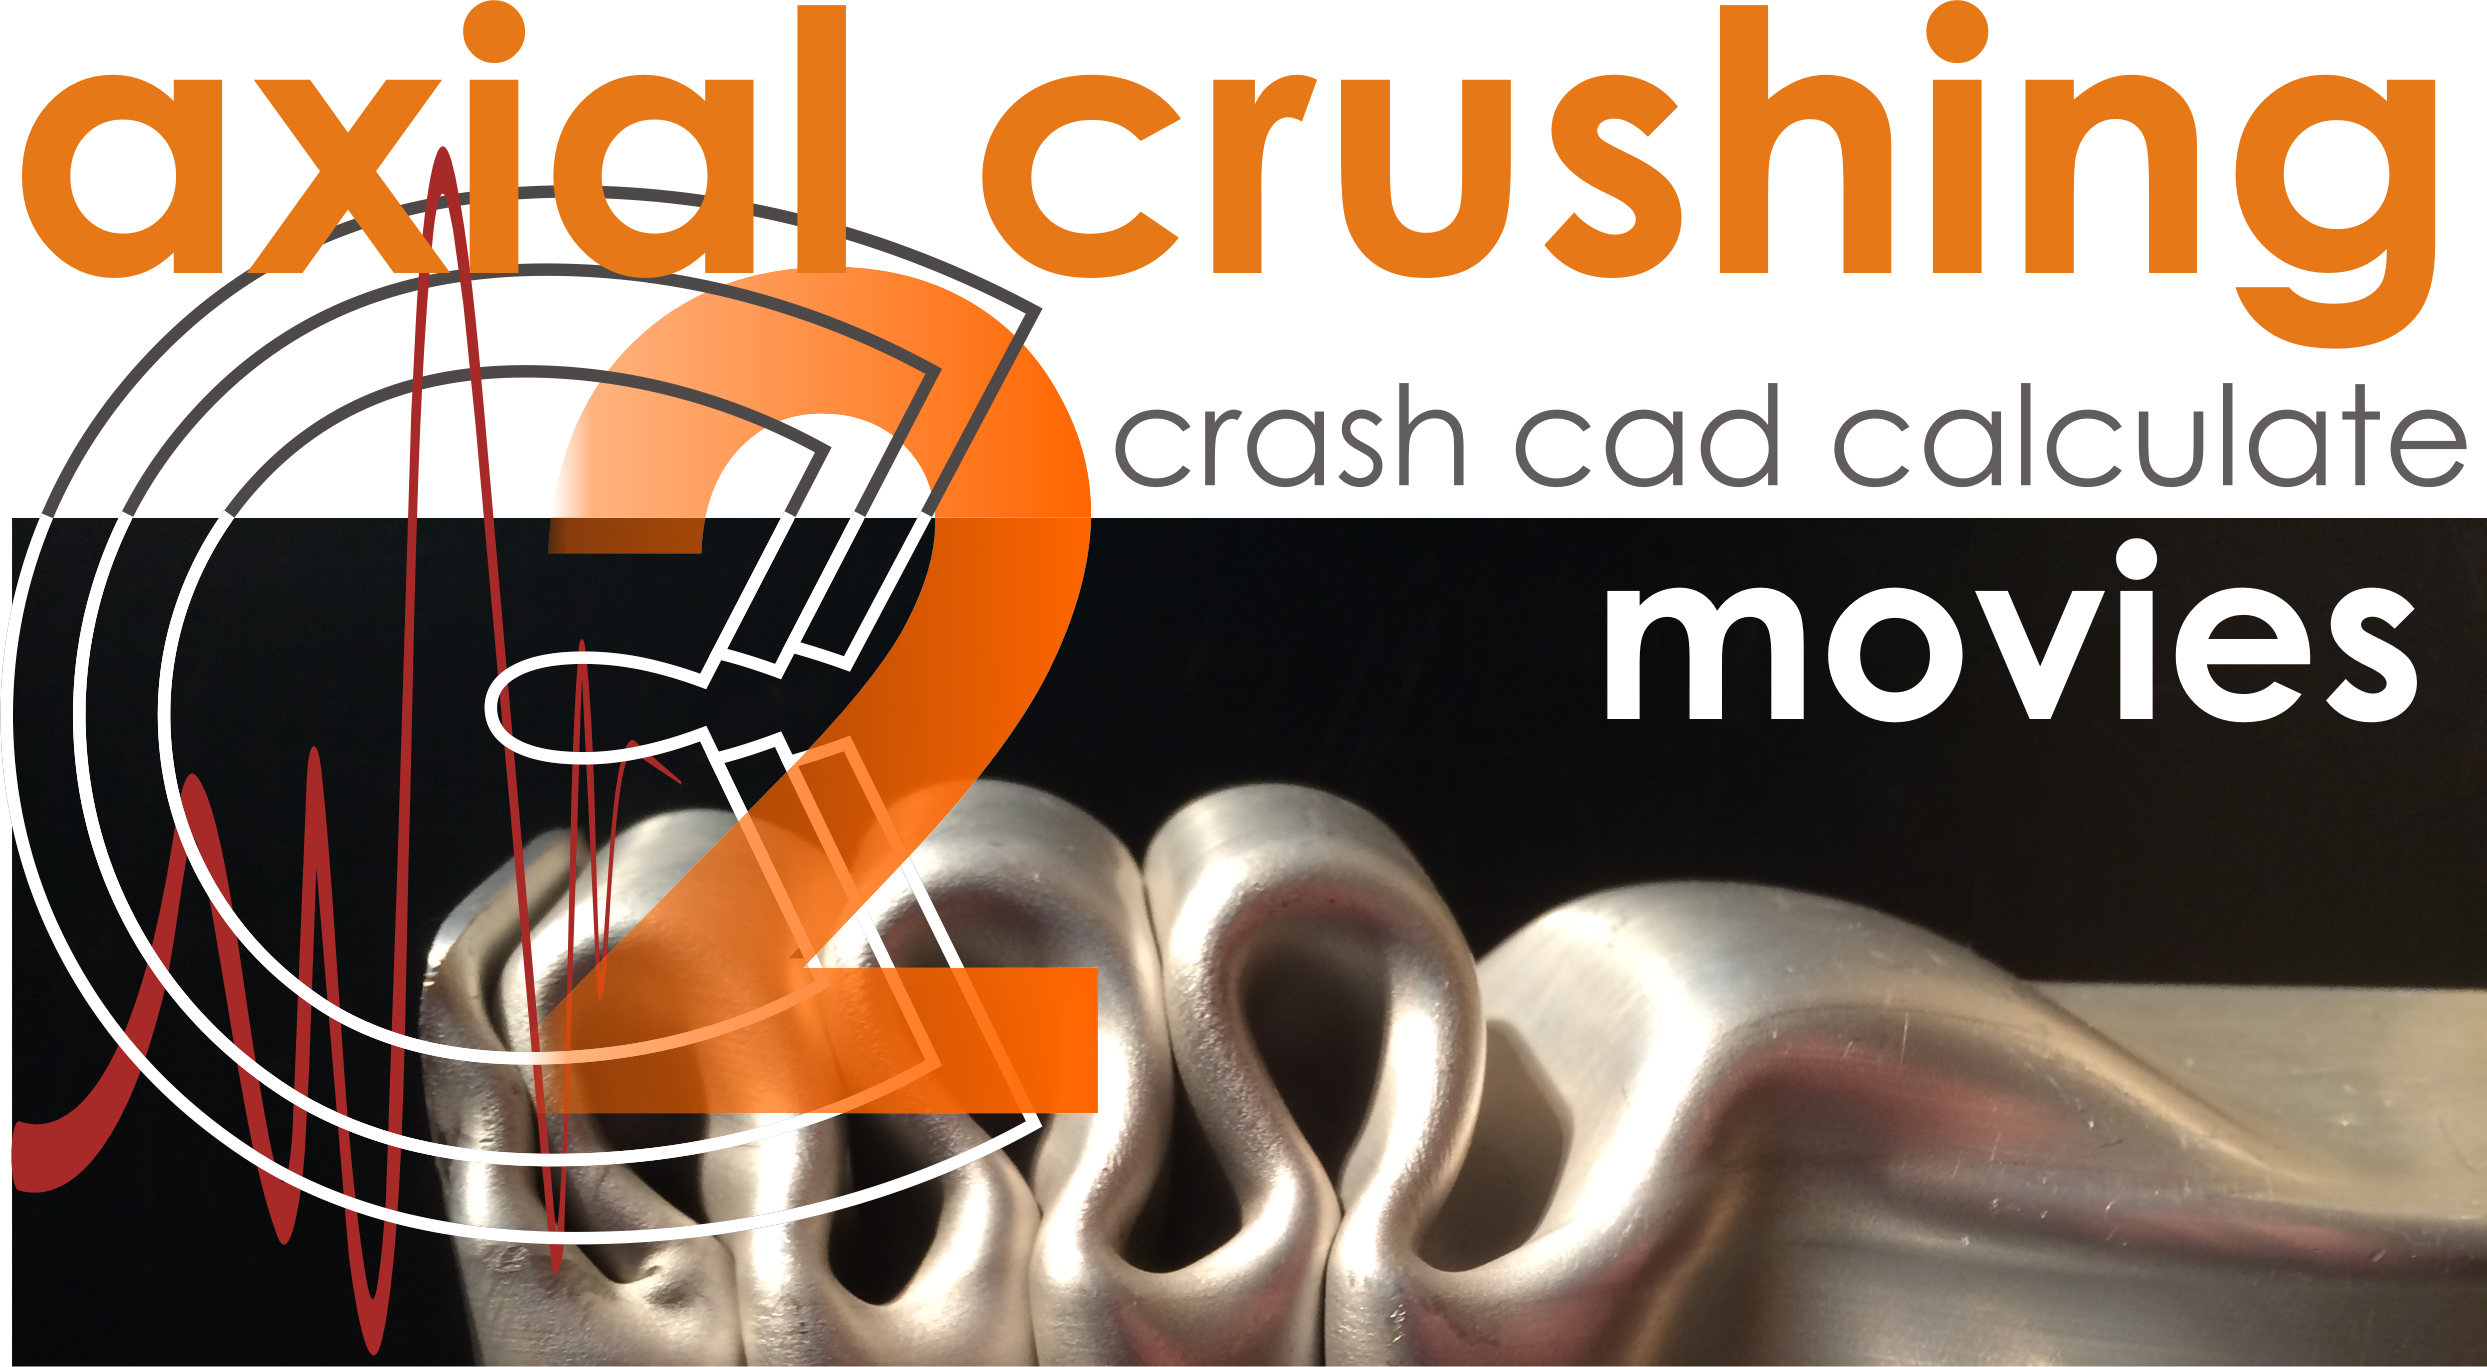 Crash Cad Calculate for Axial Crushing